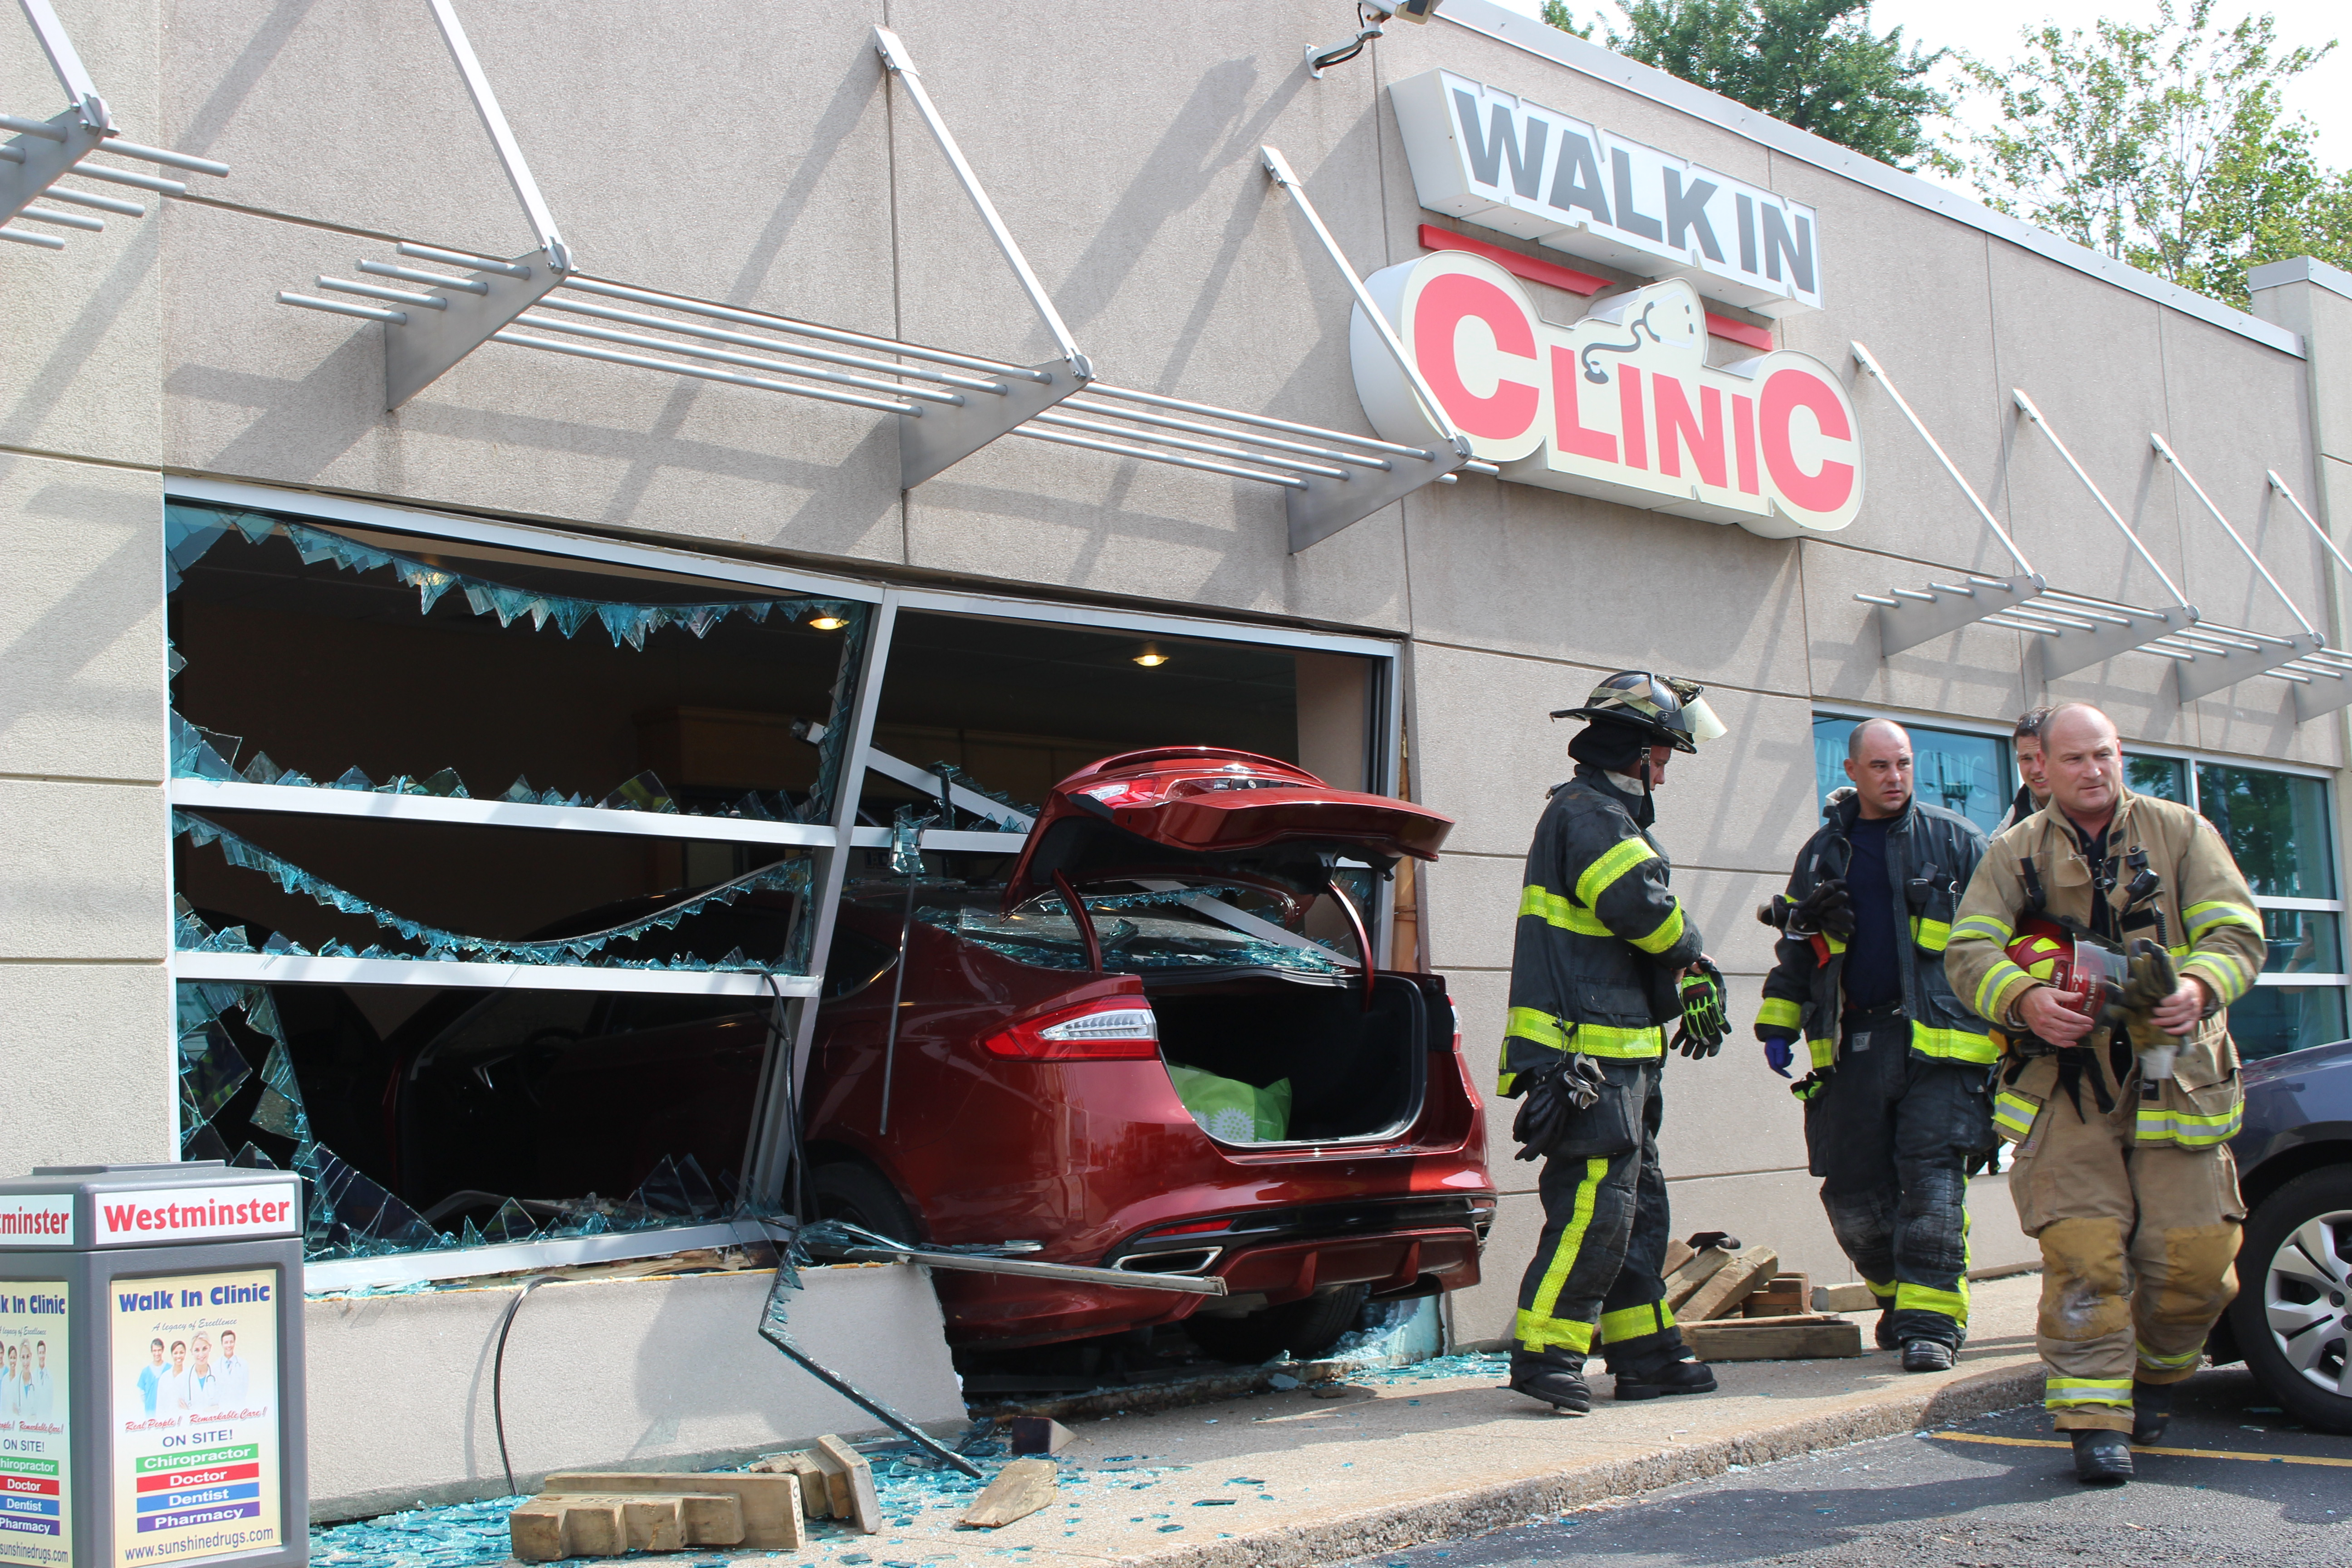 Emergency crews respond to a walk-in clinic on Tecumseh Rd. E after a car smashes through the front window, June 8, 2015. (Photo by Jason Viau)